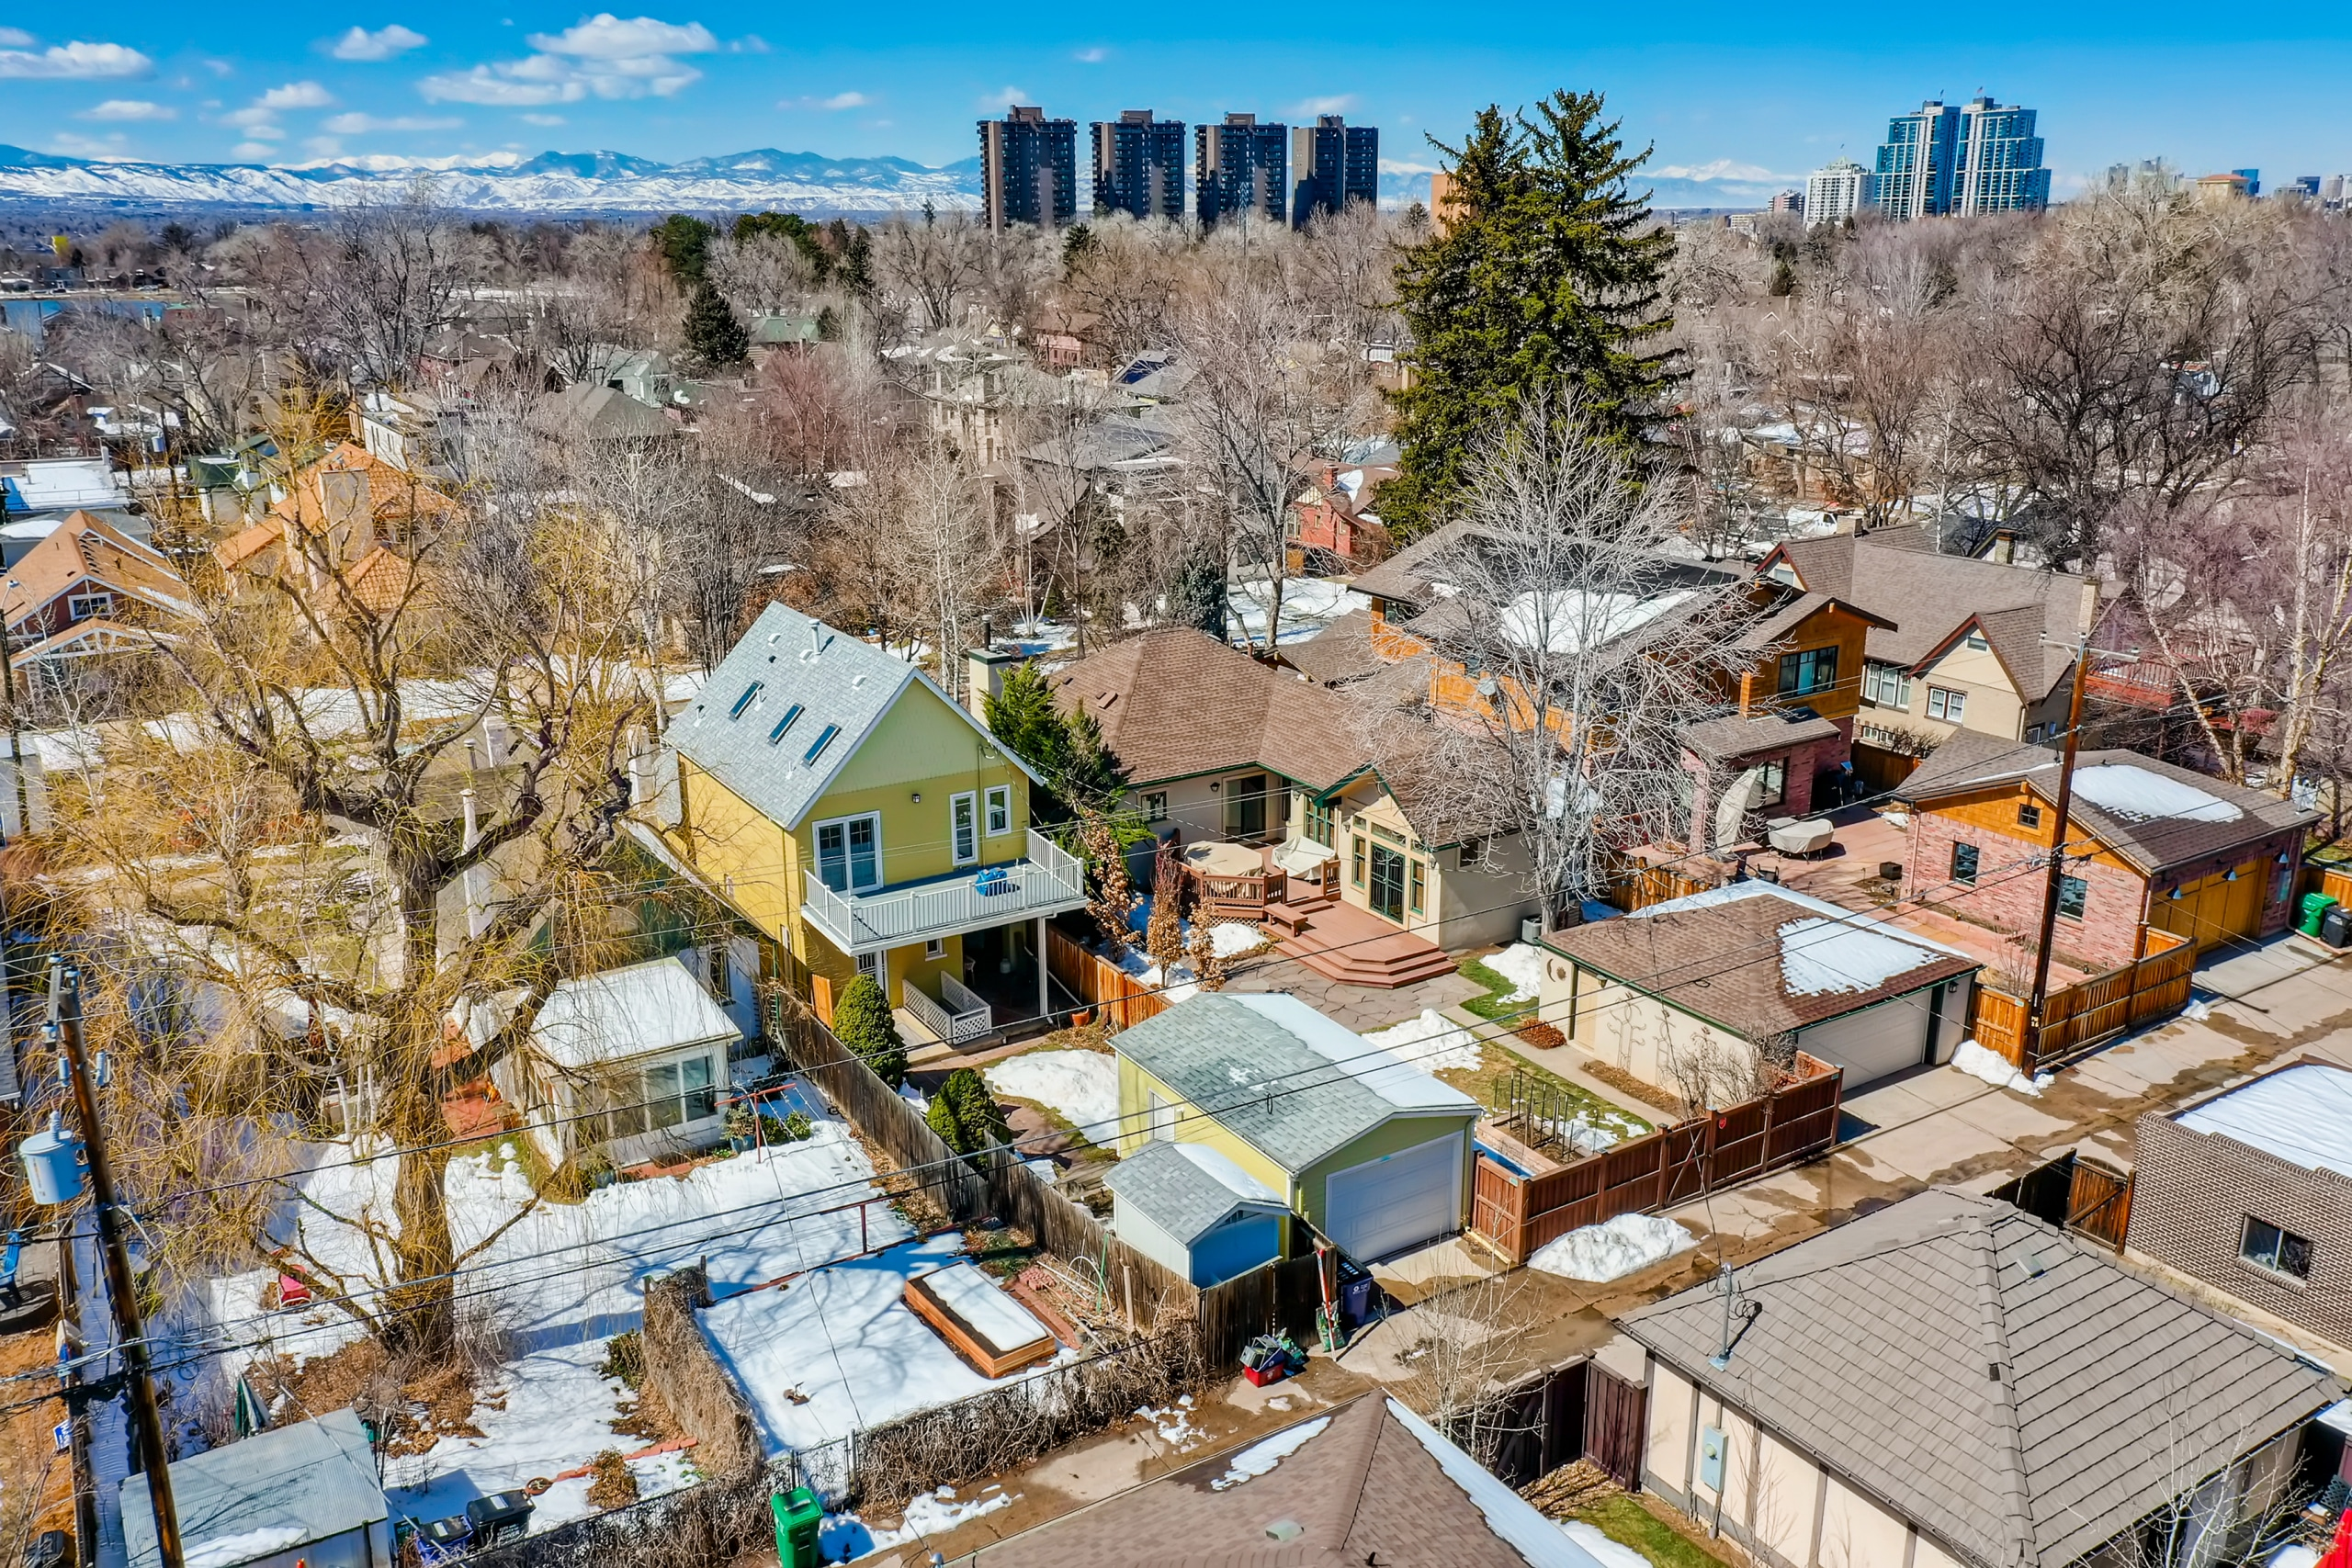 Washington Park Home, Drone View, Mountains in Background